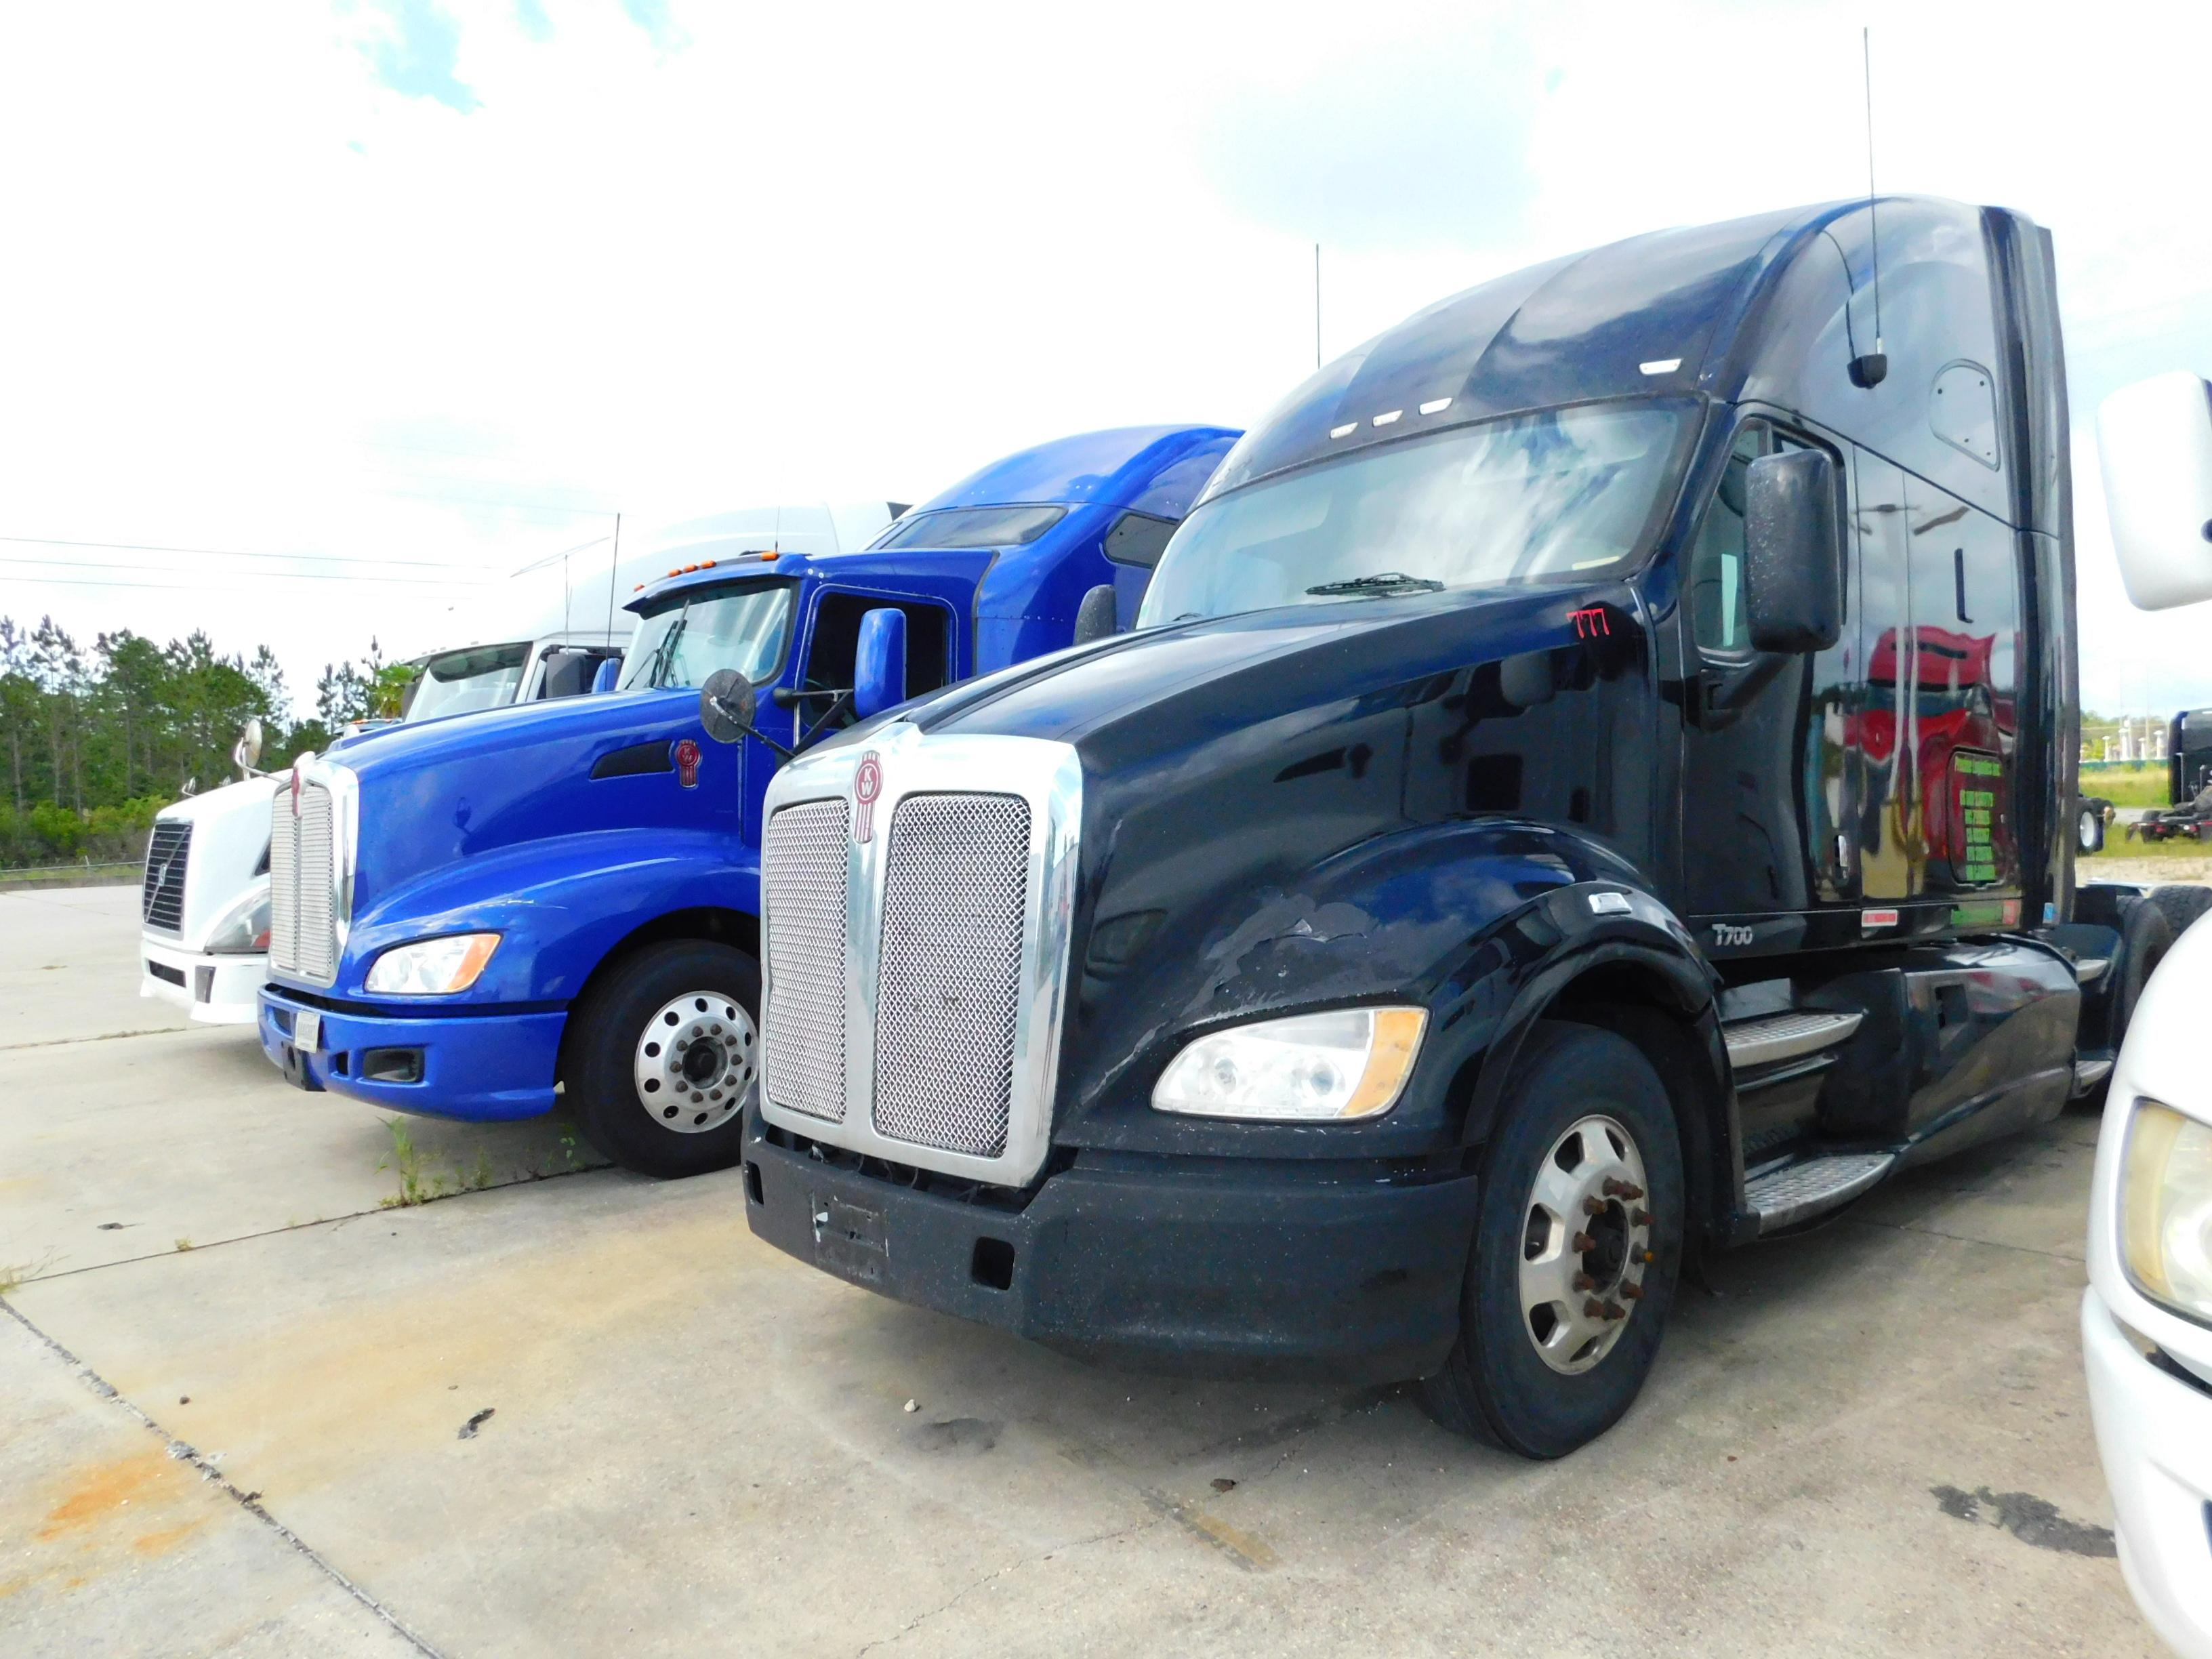 USED 2012 KENWORTH T700 SLEEPER TRUCK #86952